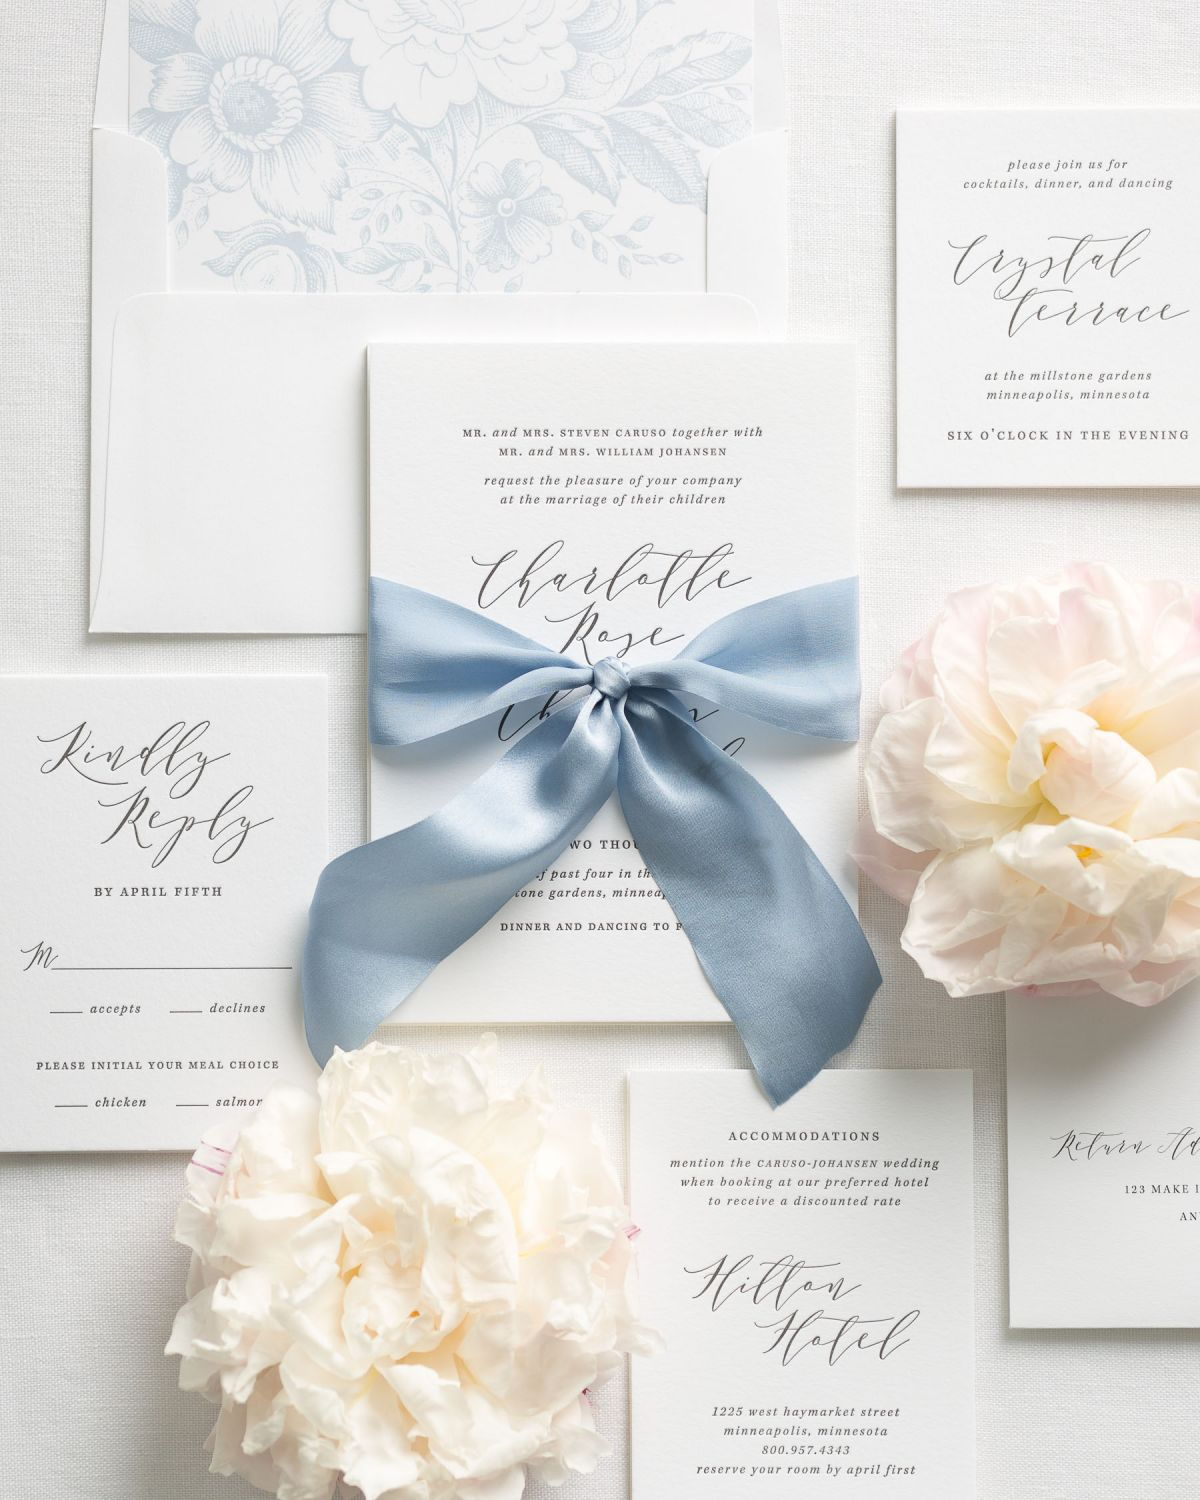 Dusty Blue Wedding Invitations with Letterpress Printing